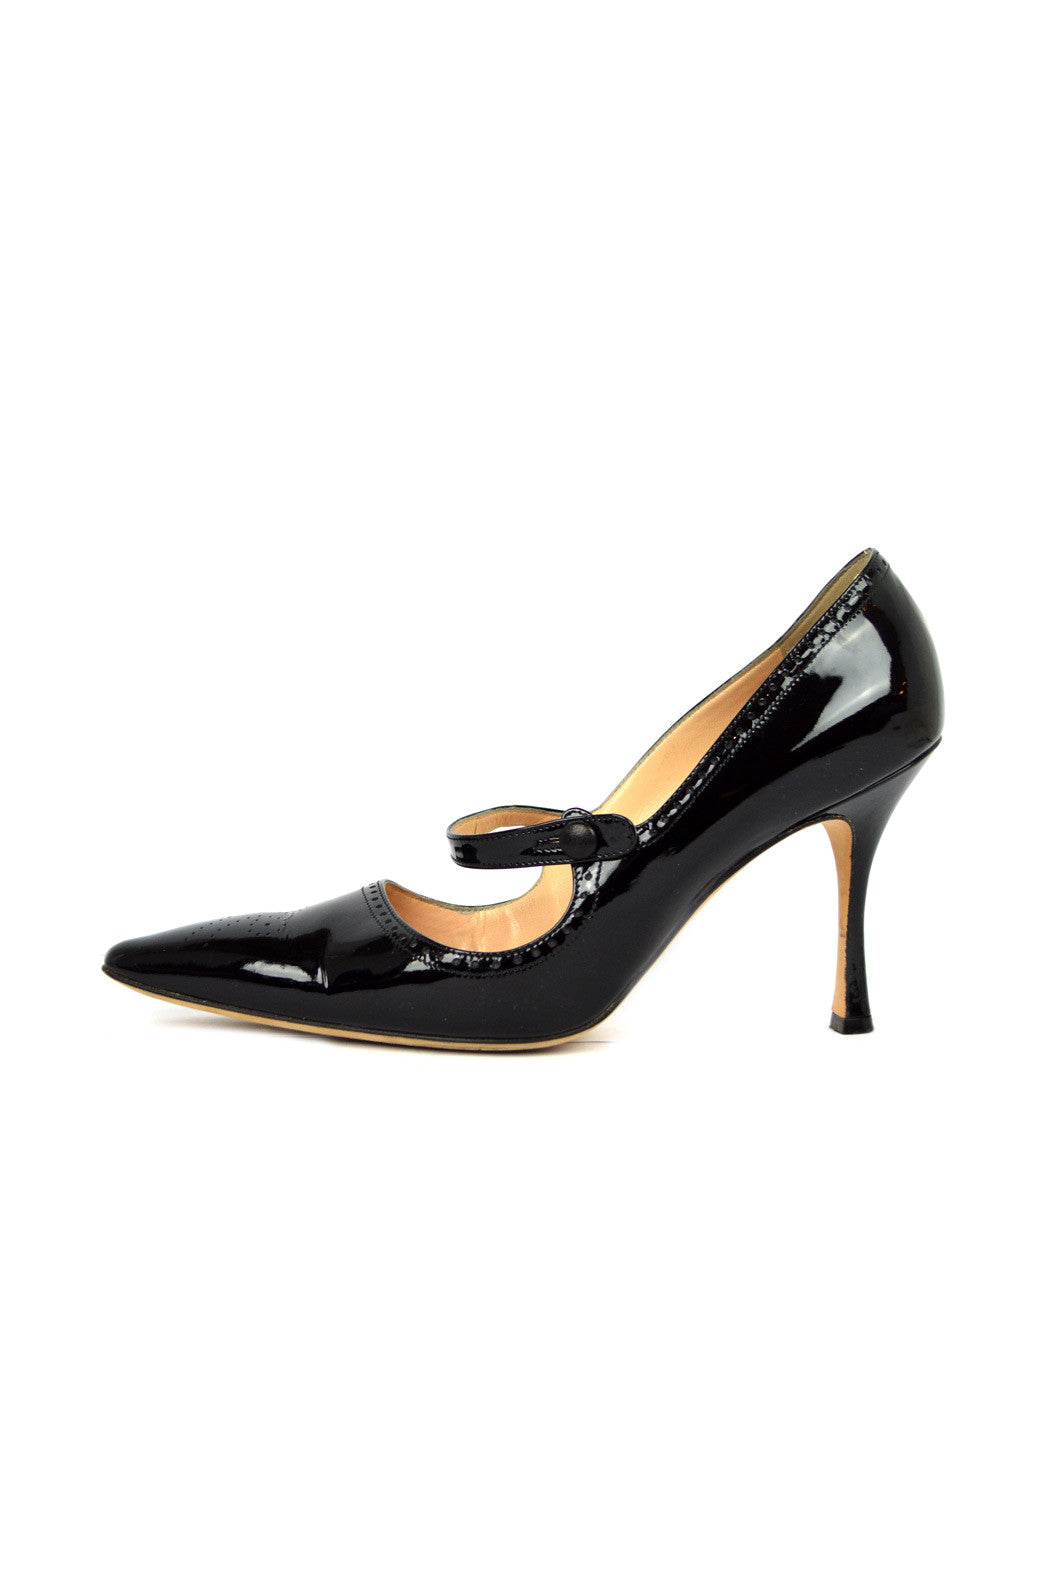 Black Patent Pointed-Toe Mary-Janes